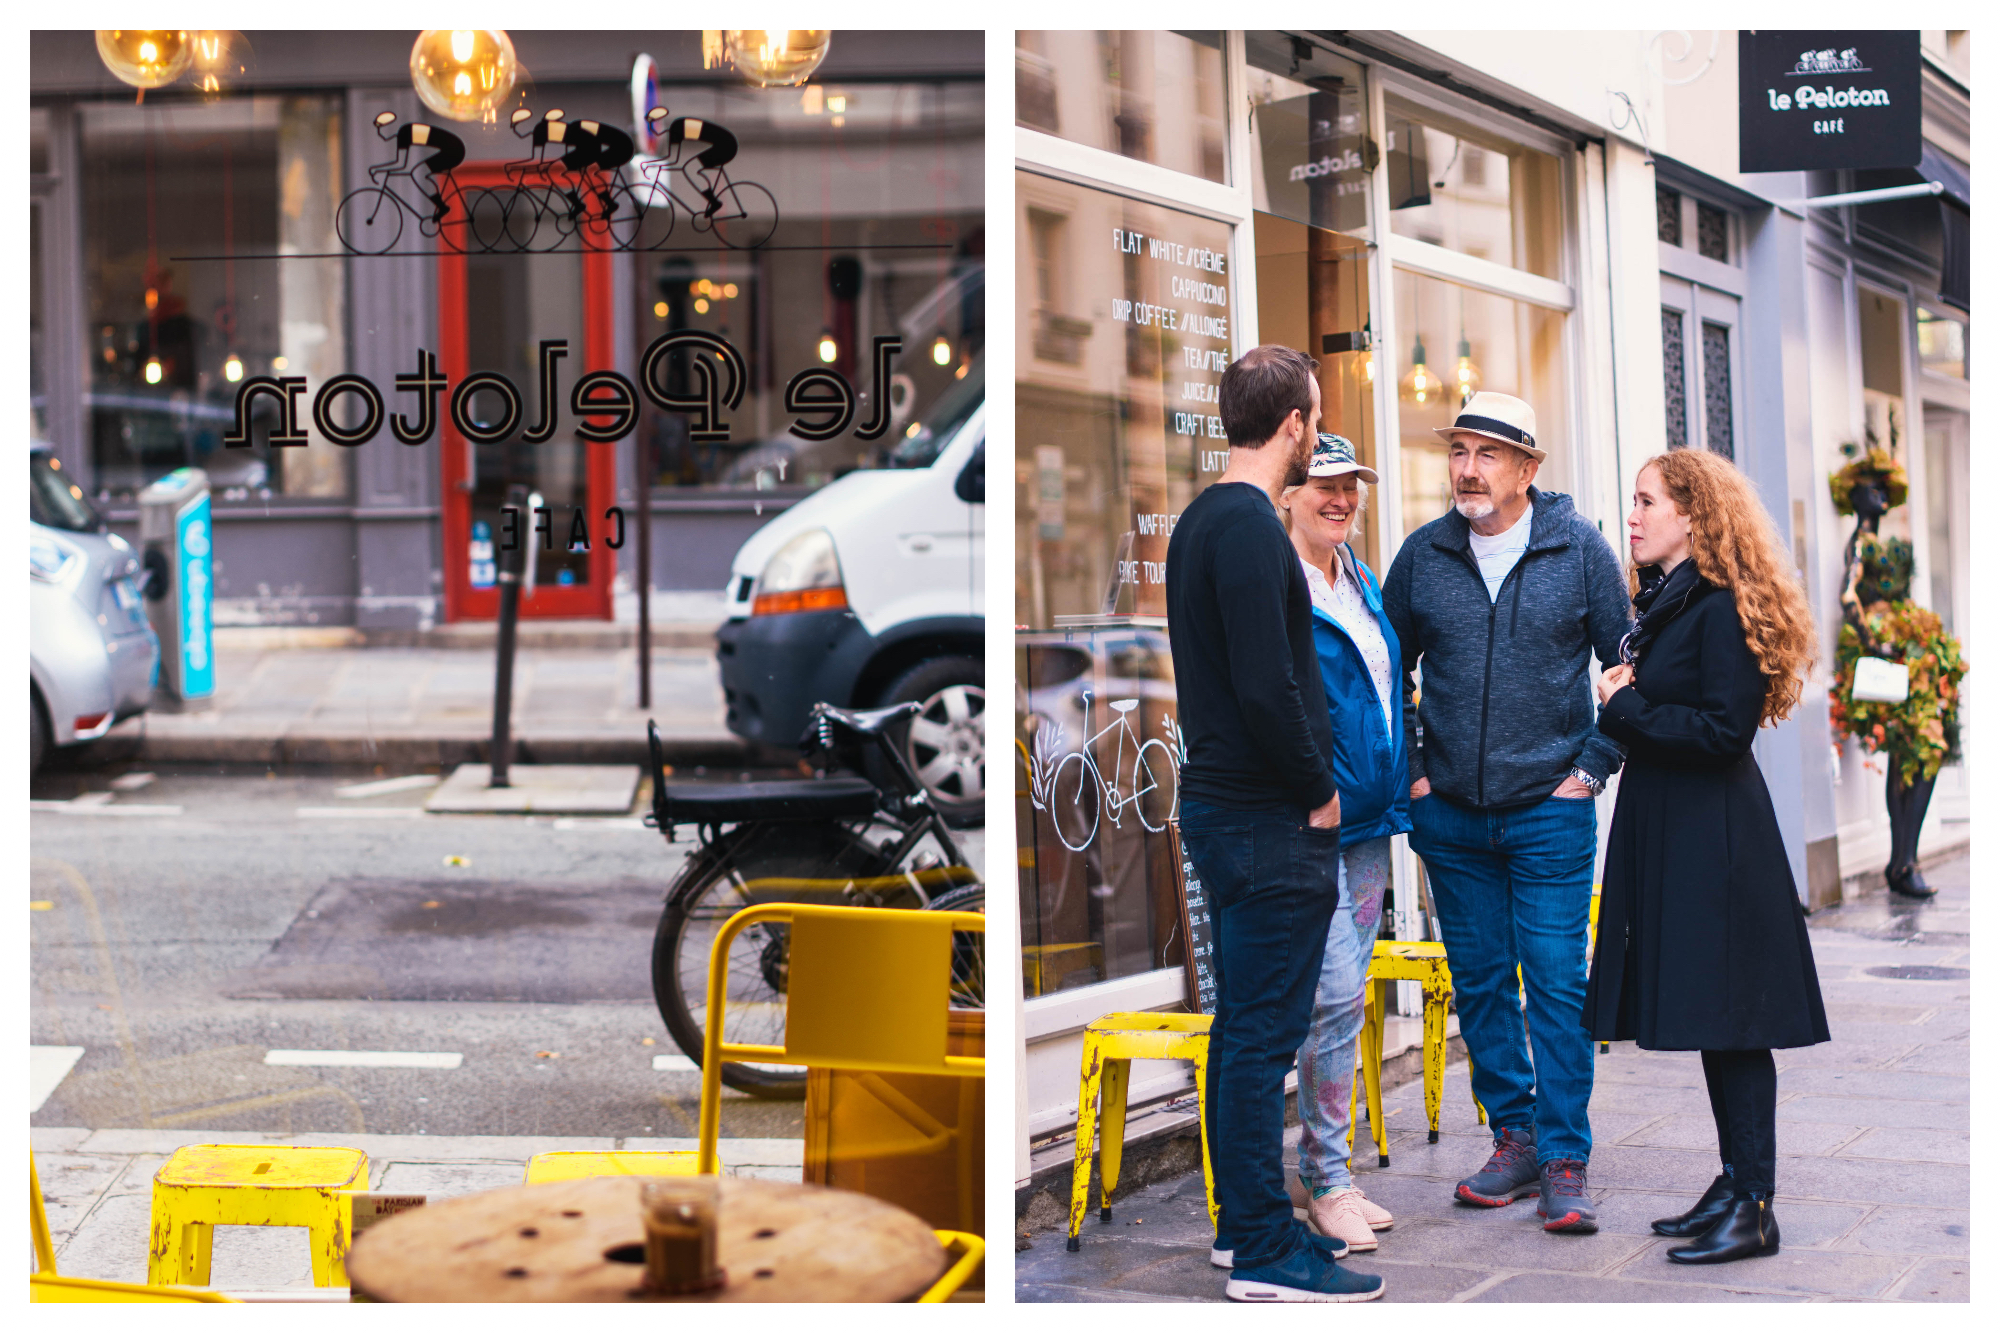 On left: Yellow stools wait on the sidewalk for the café goers of Le Peloton, a popular spot in Le Marais. on right: Jane Bertch, founder of La Cuisine Paris cooking school, chats with three friends in front of her favorite café, the cheery, yellow Le Peloton.